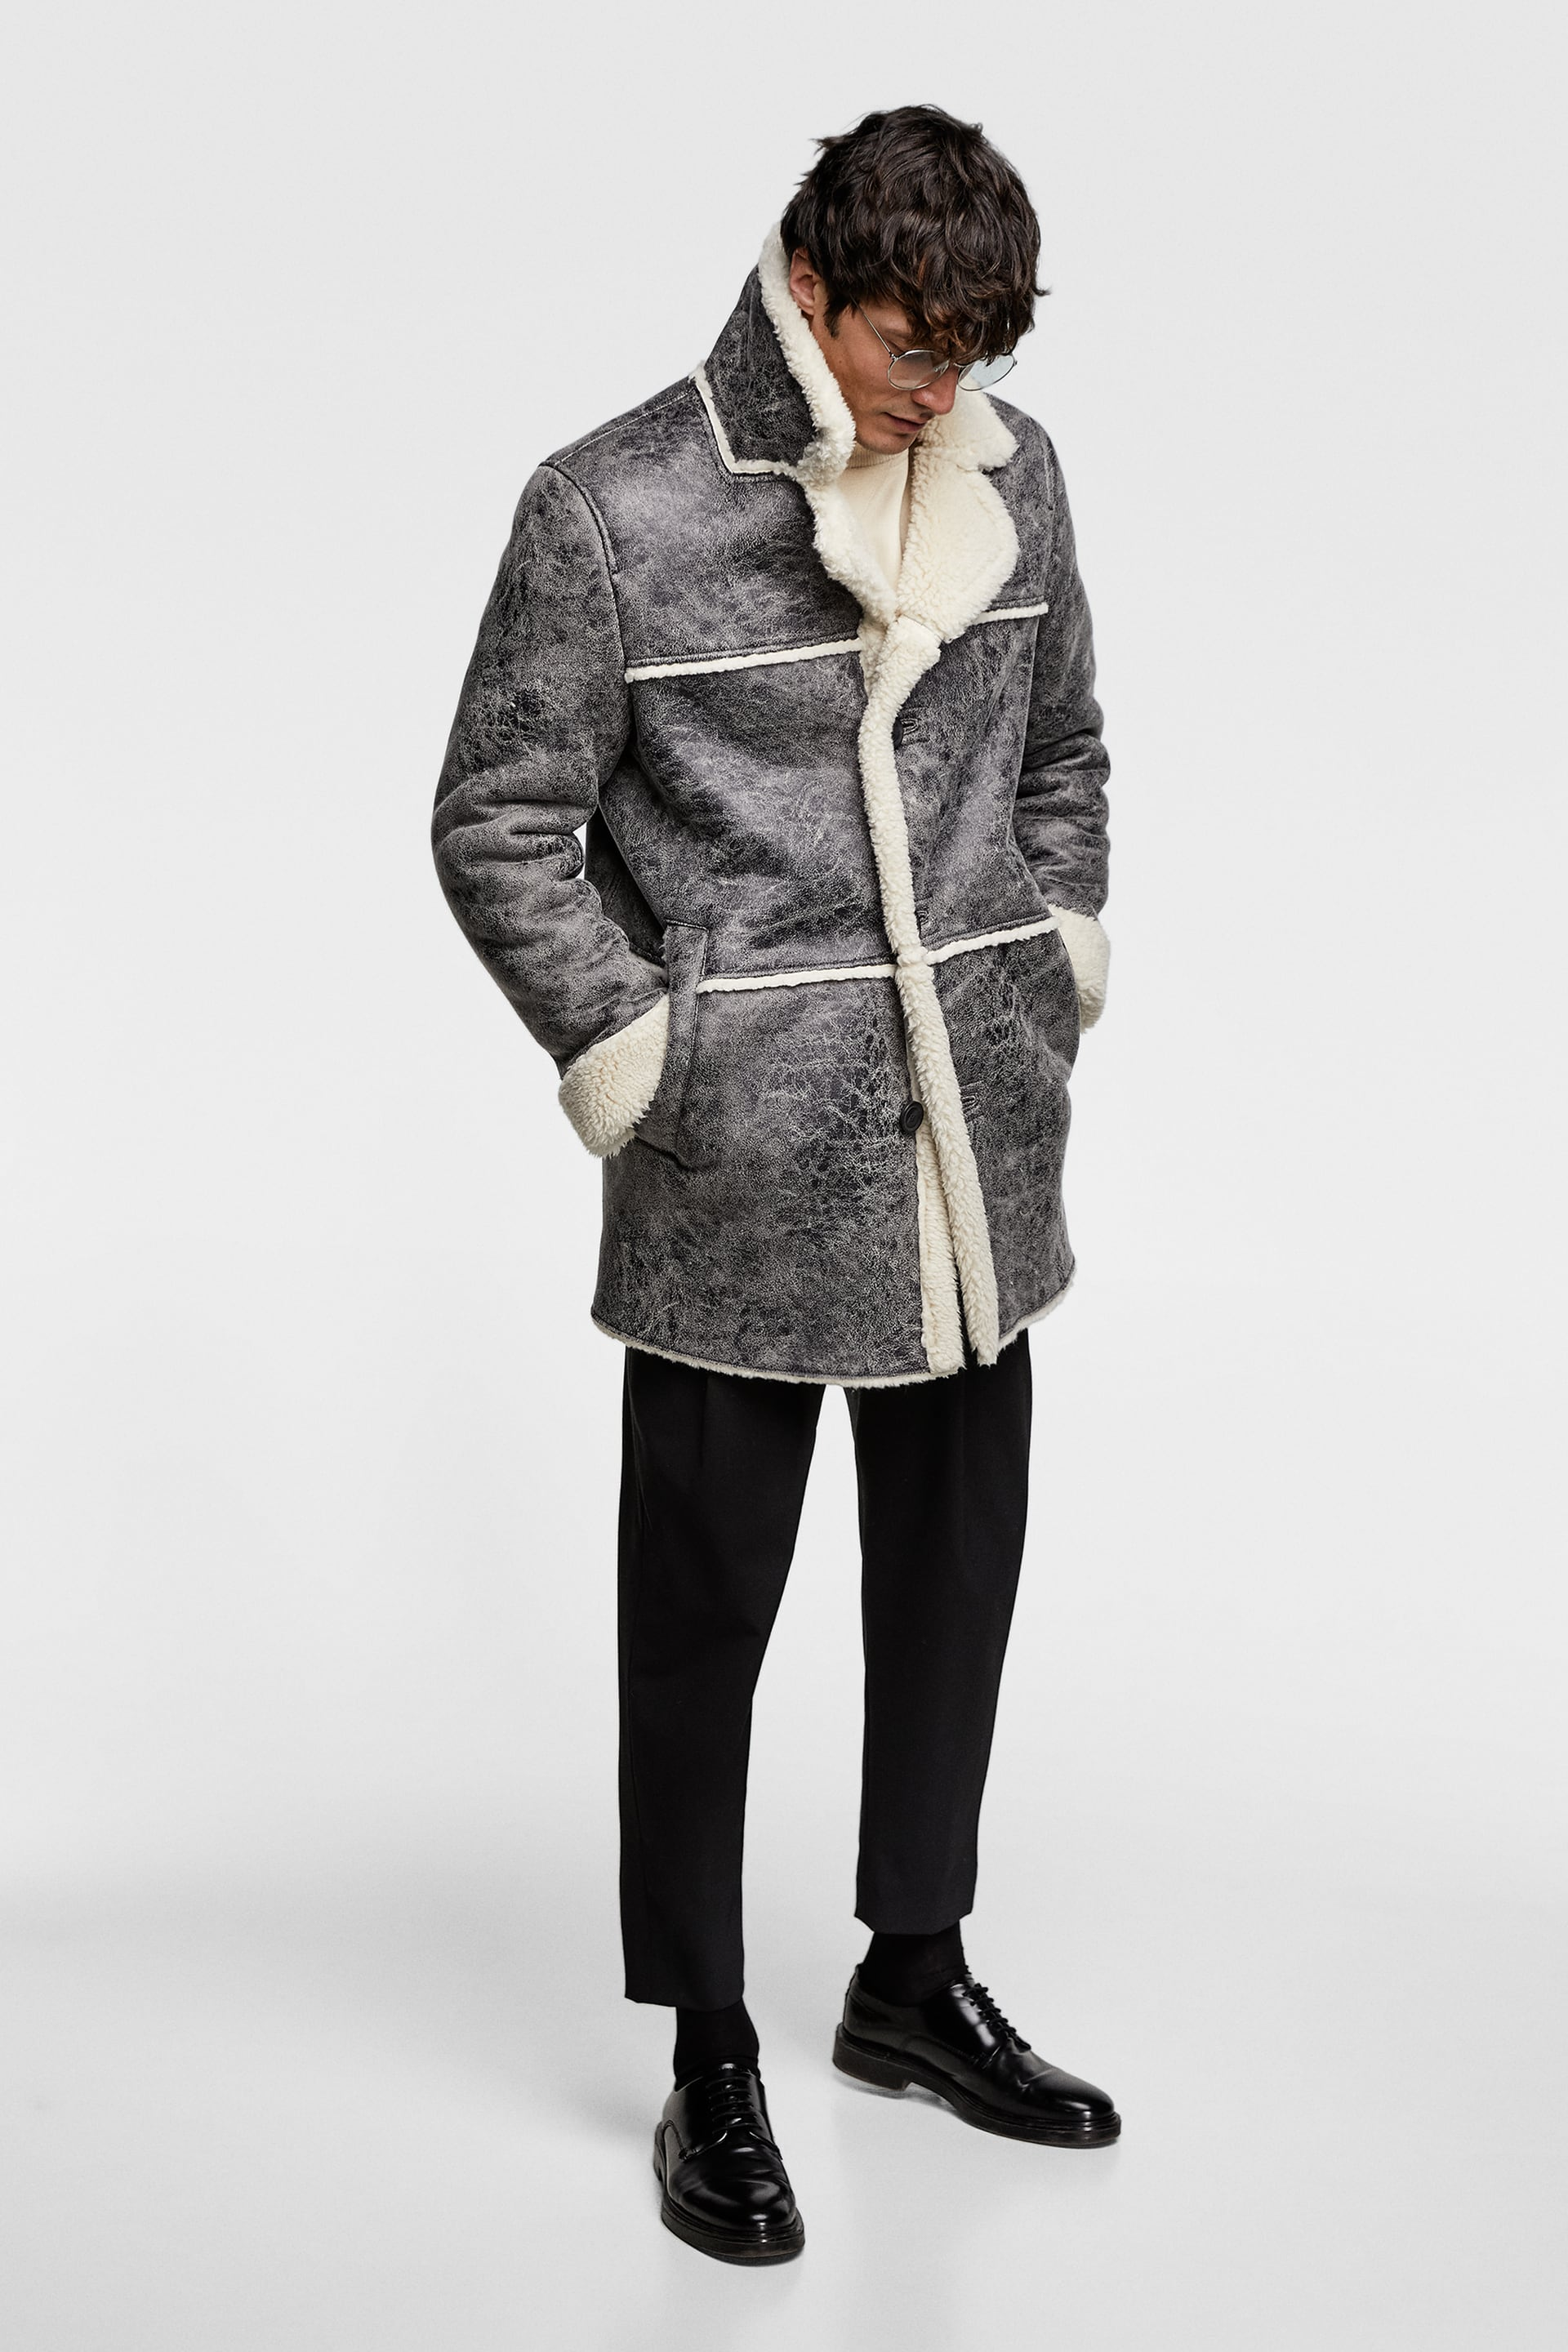 Double Faced Faux Leather Coat Faux Shearling Outerwear Man by Zara